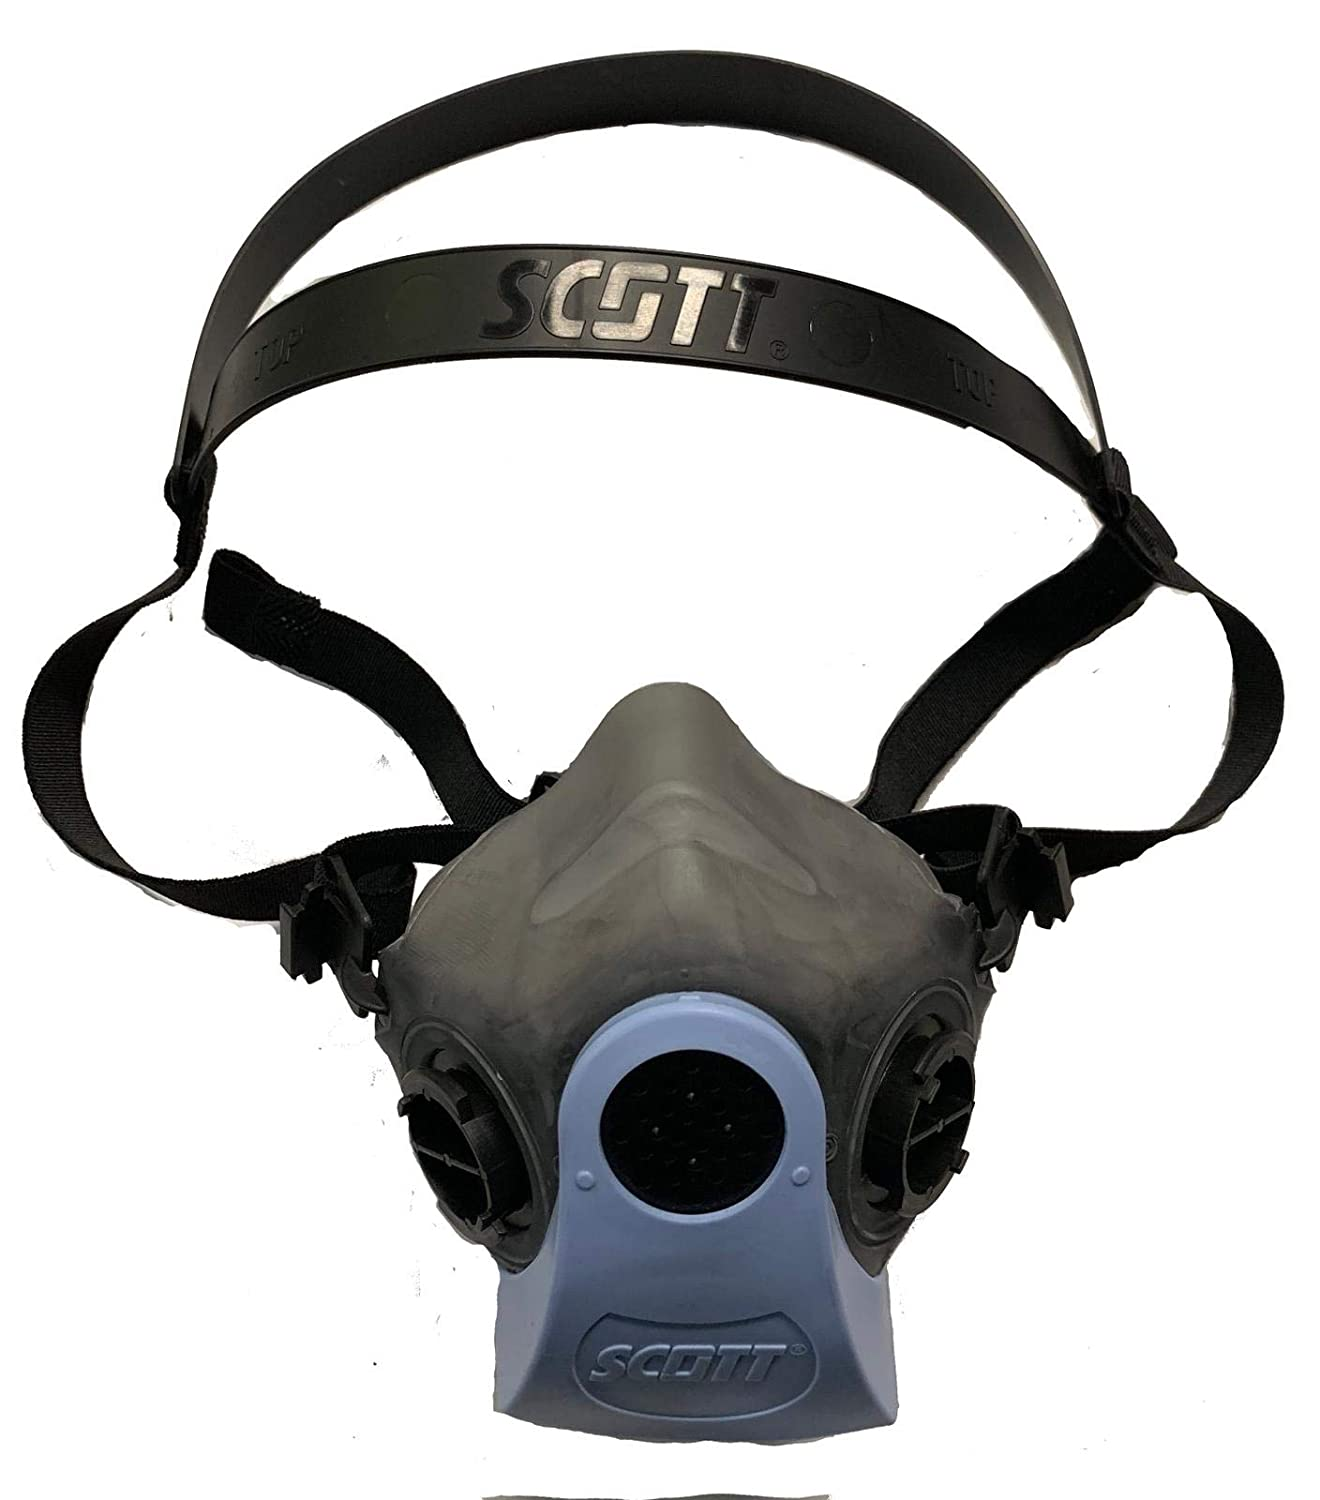 miller electricml00895 half mask respirator m/l single filter